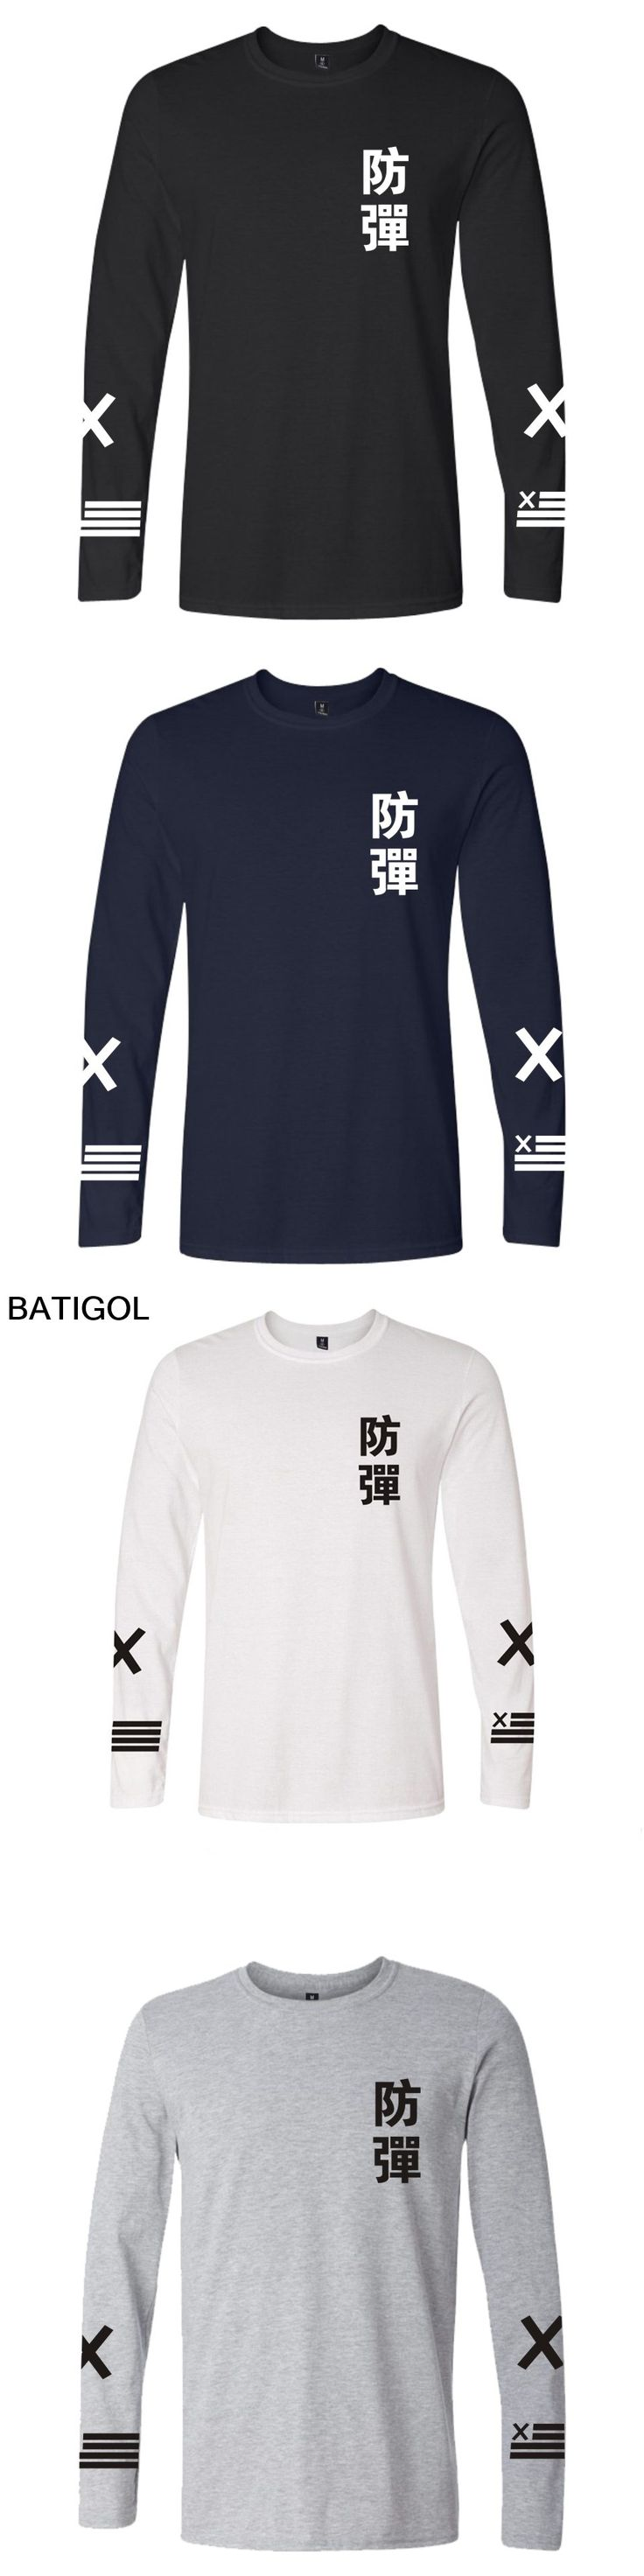 BATIGOL BTS K-pop men Tshirt Top Popular Casual Bangtan Hip Hop T Shirt Cotton Summer Long Sleeve male Fans Tee Shirt